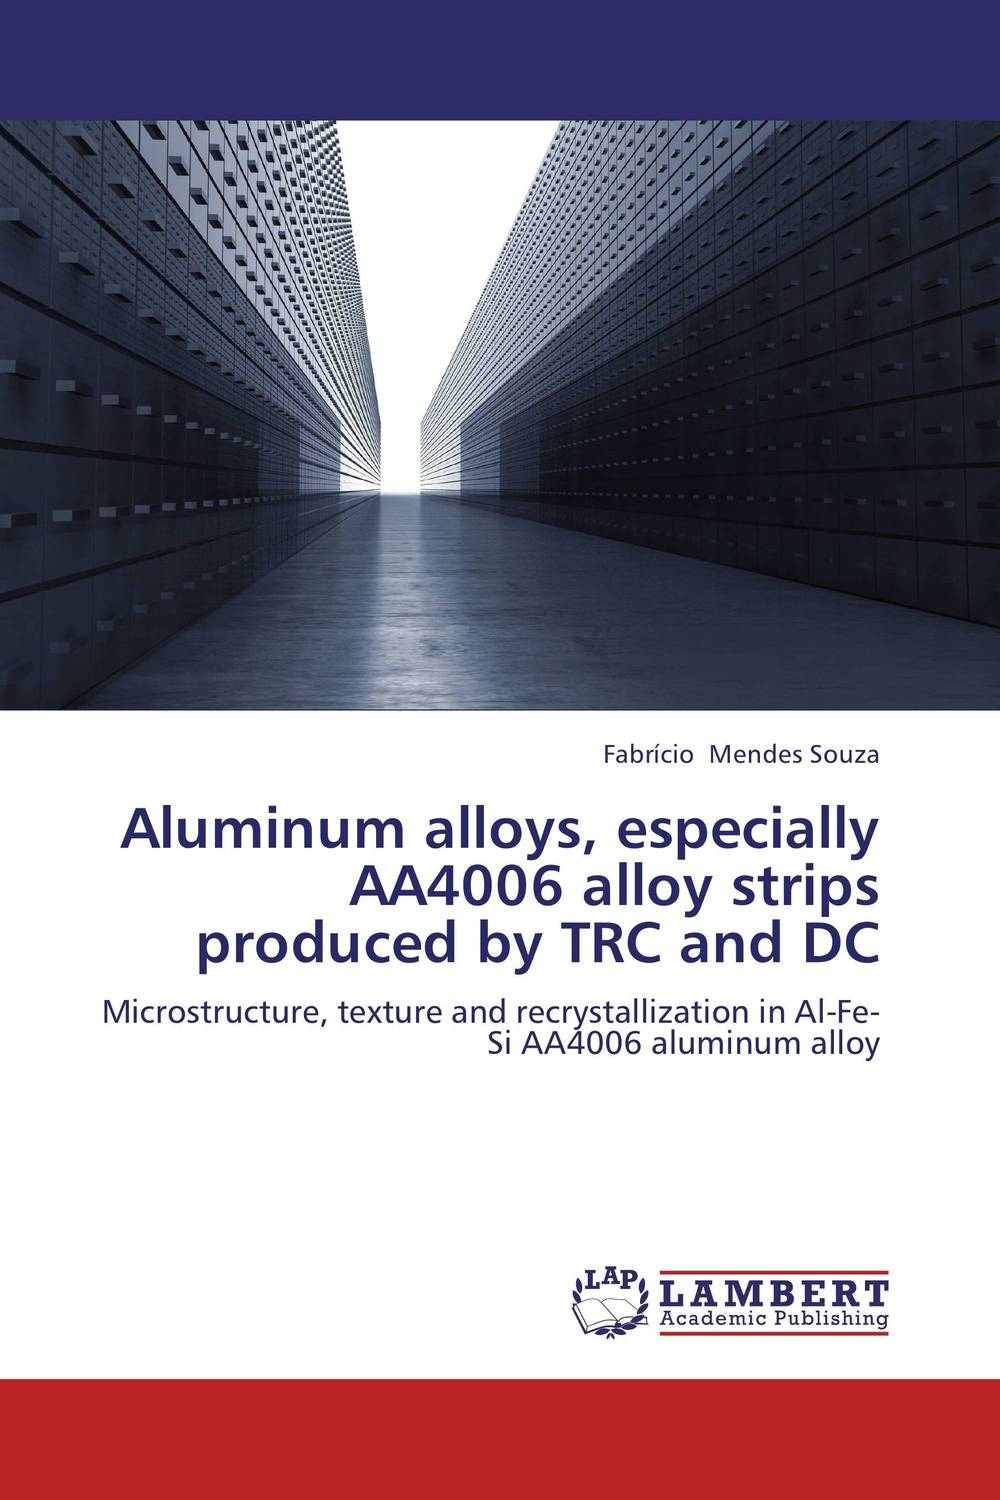 Aluminum alloys, especially AA4006 alloy strips produced by TRC and DC emote alloy